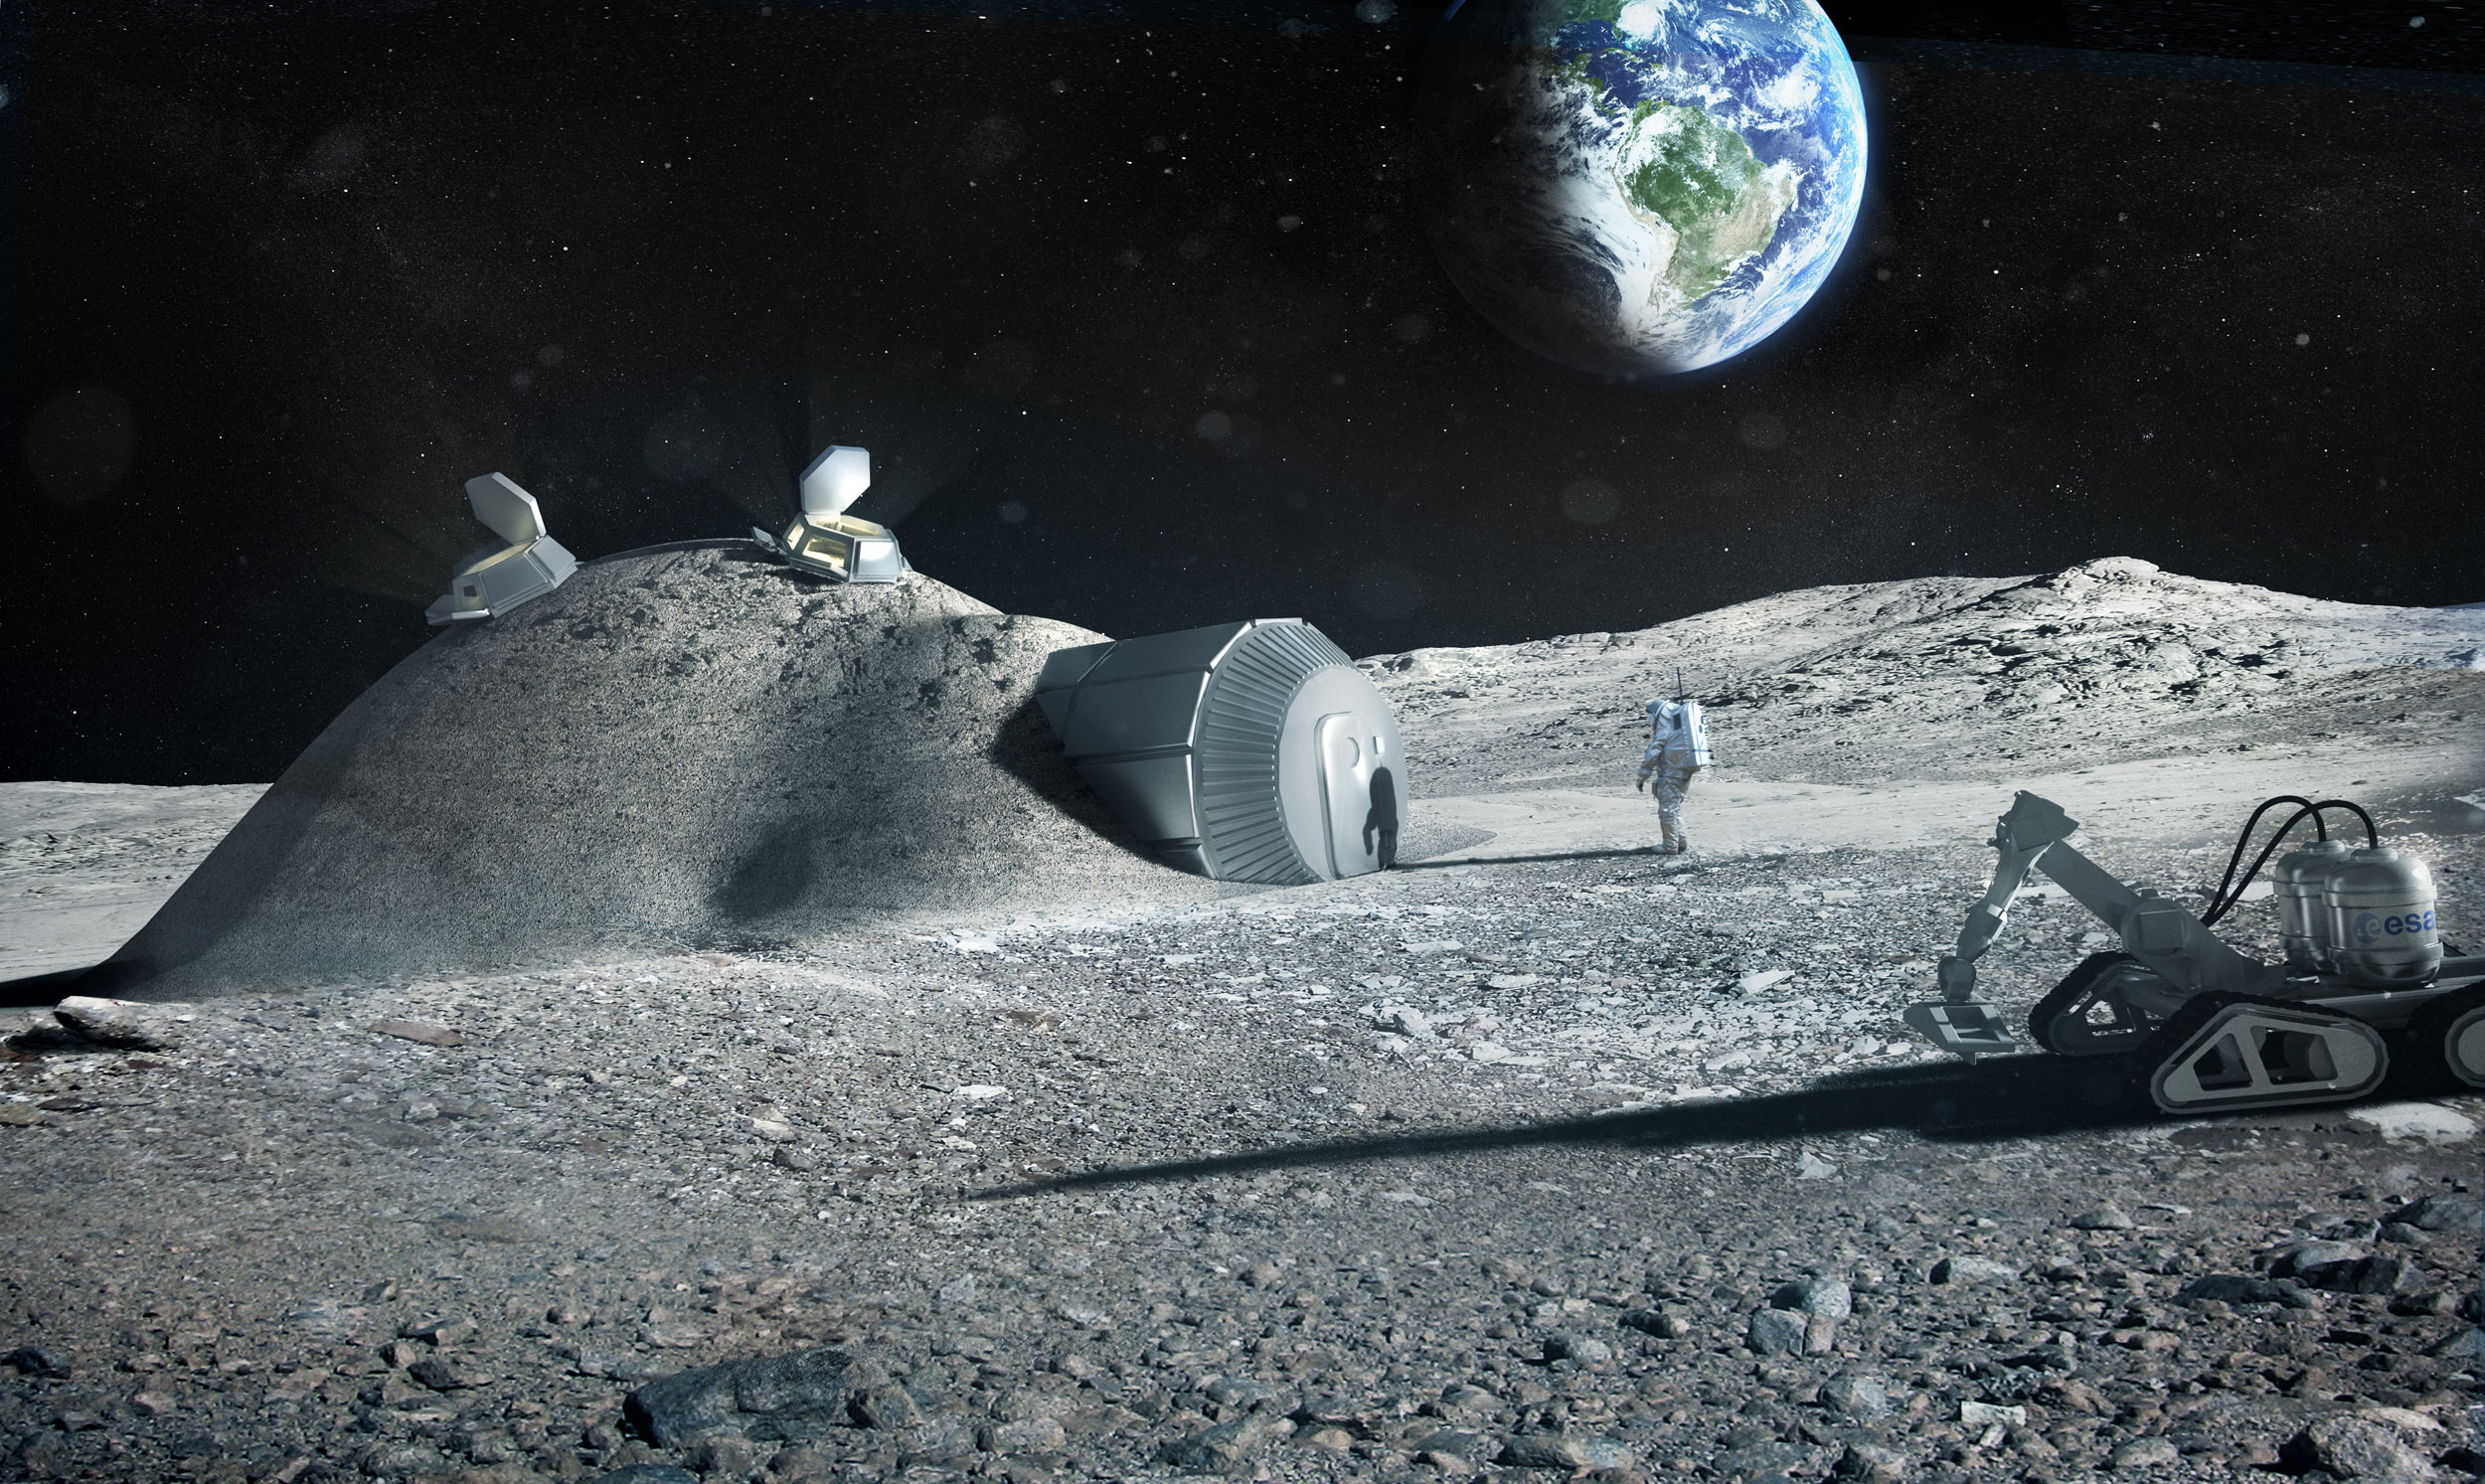 Image: ESA researchers look at lunar dust as a potential raw material for constructing future manned outposts on the moon